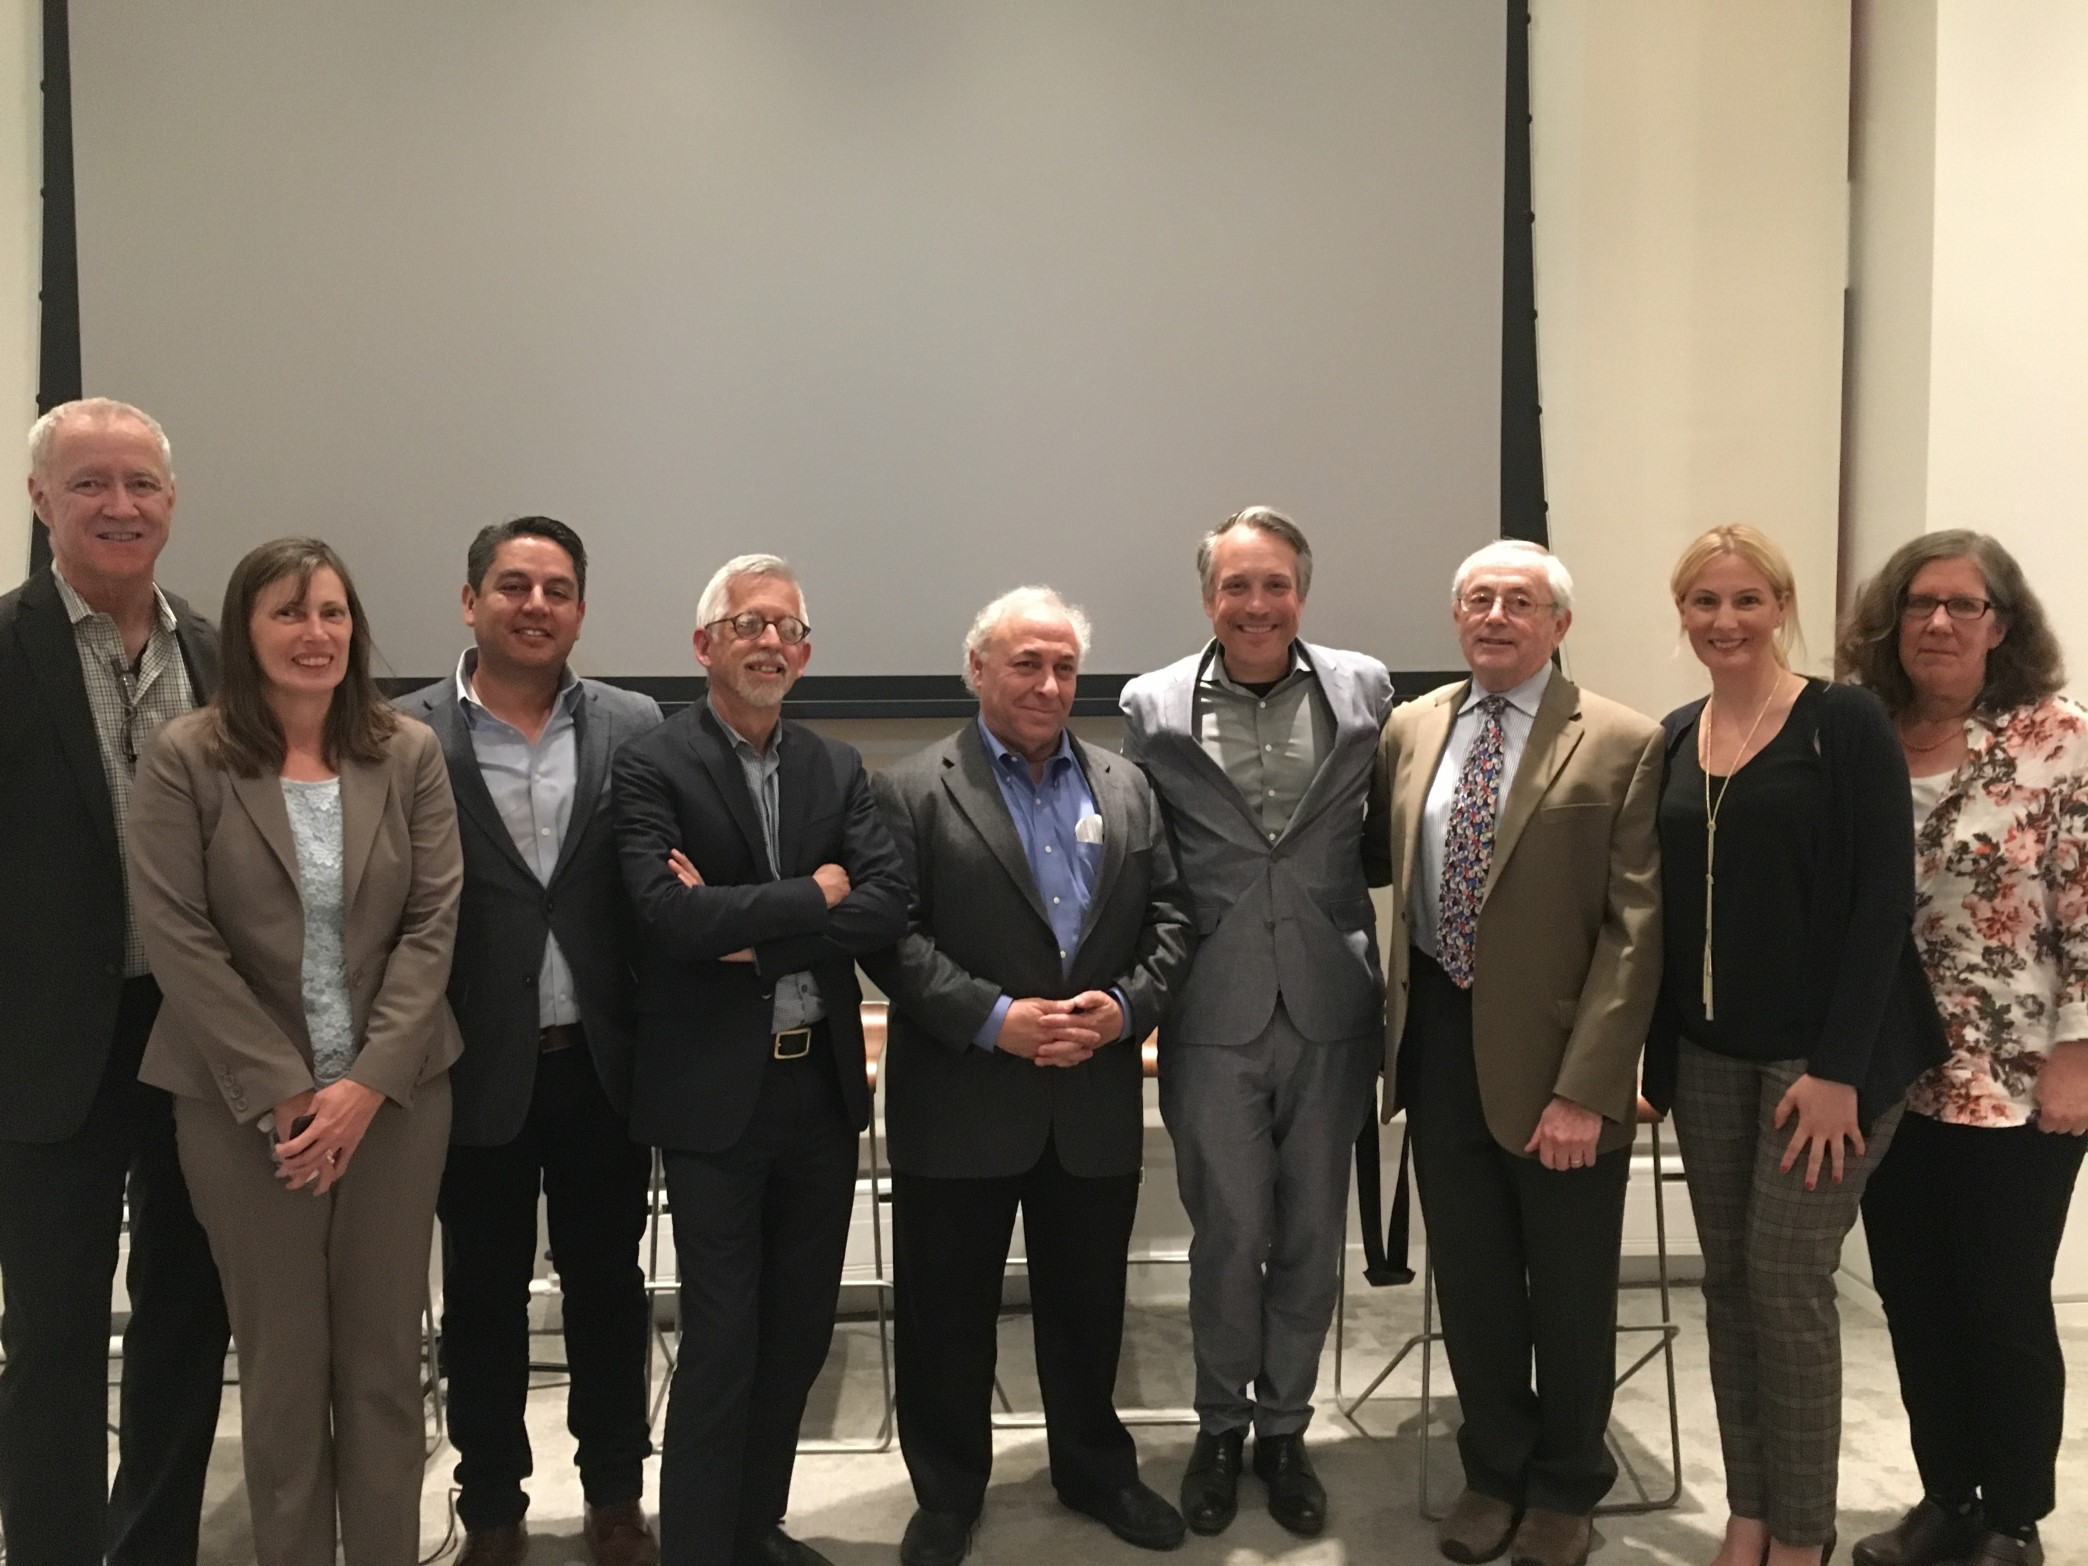 Image of Panelists from Design for Aging event